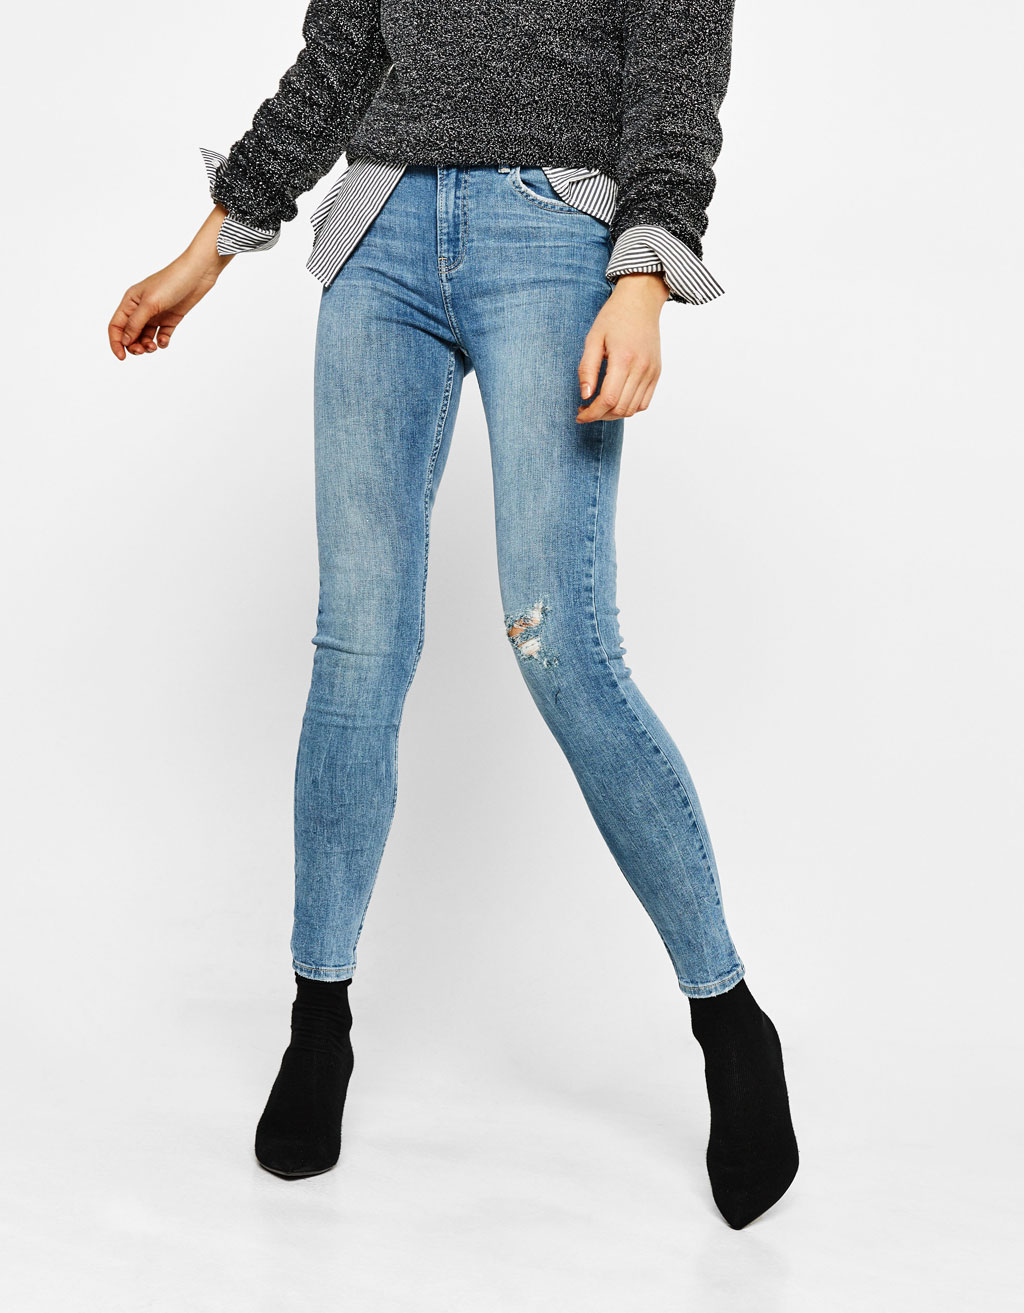 5-pocket jeans skinny fit